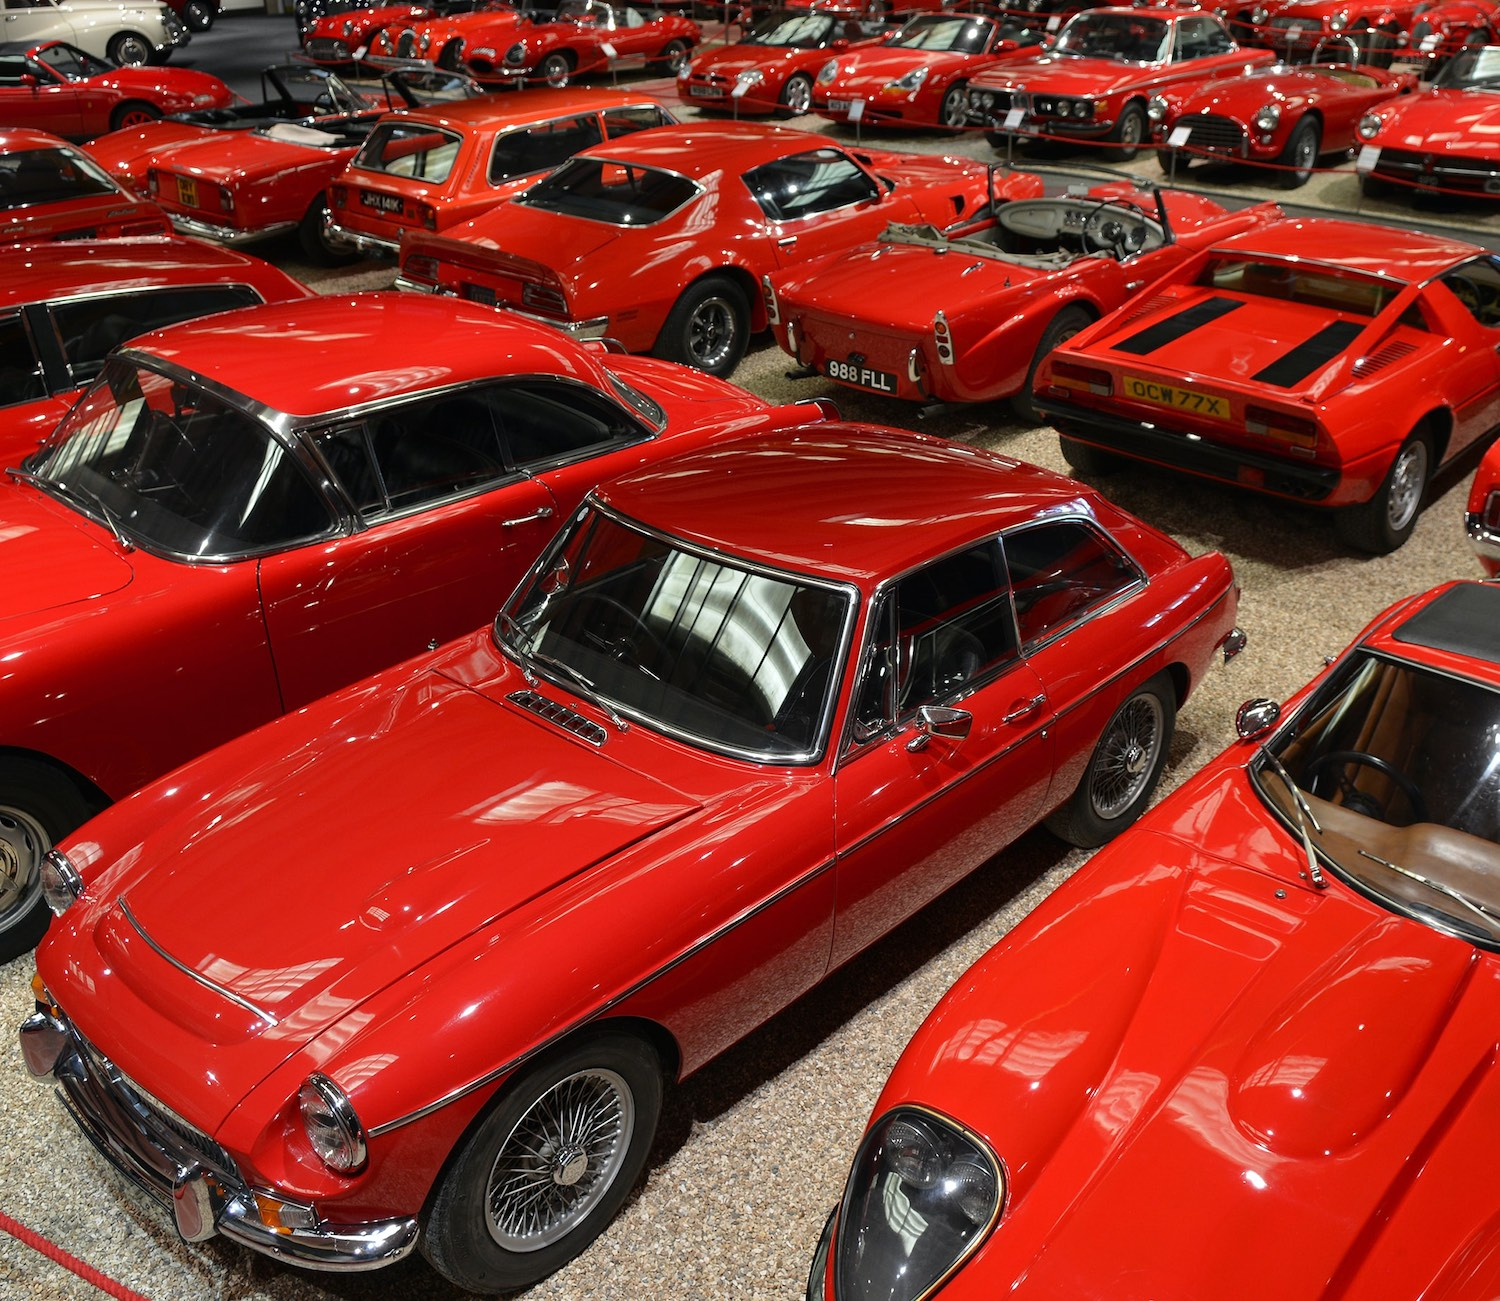 a showroom with lots of red cars in rows